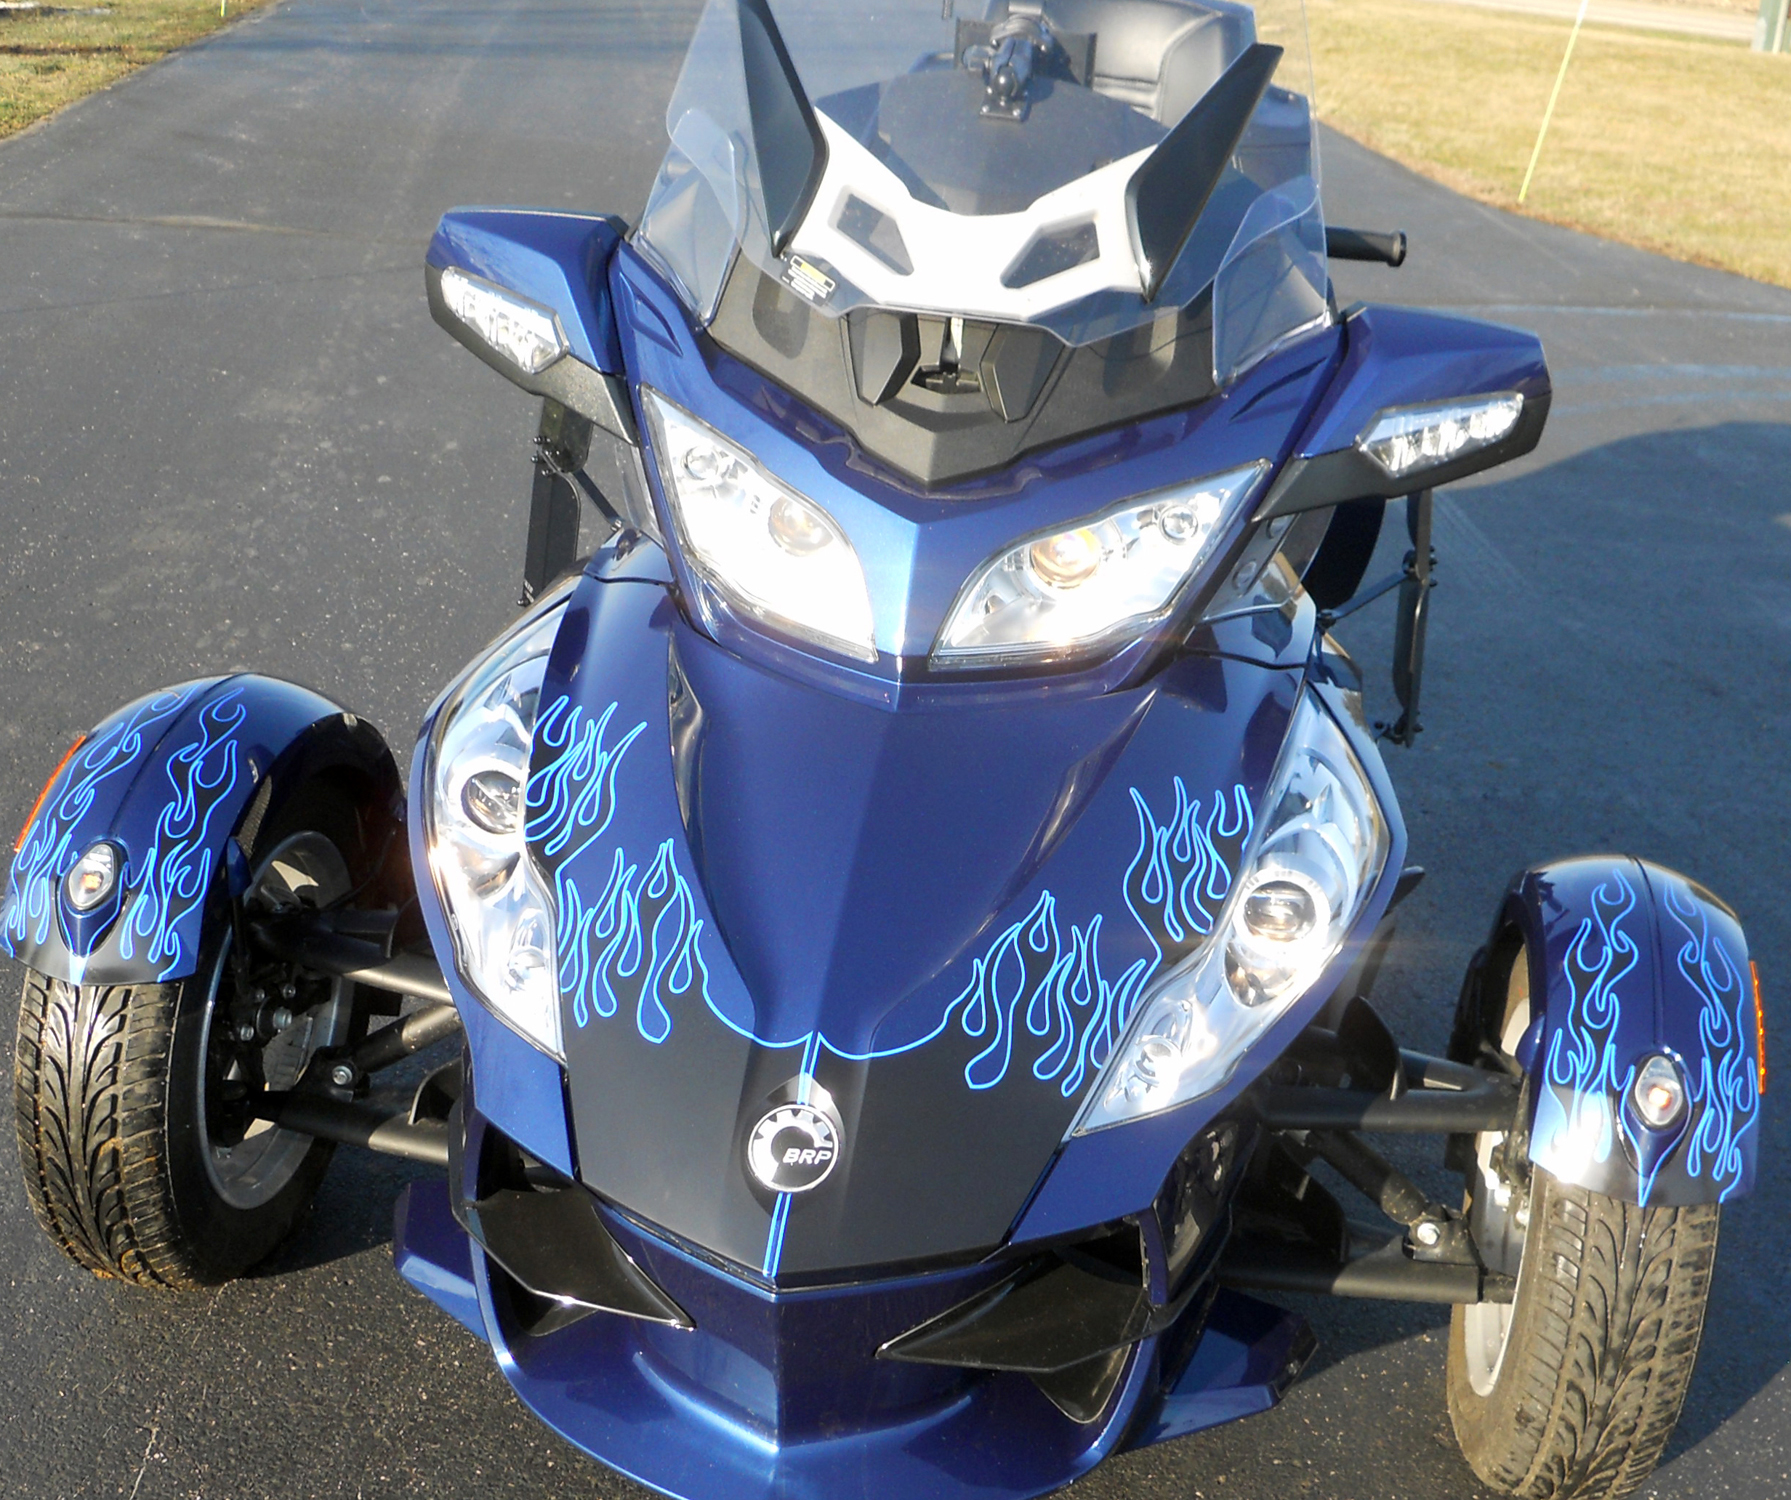 Best-Flame kit for can am spyder